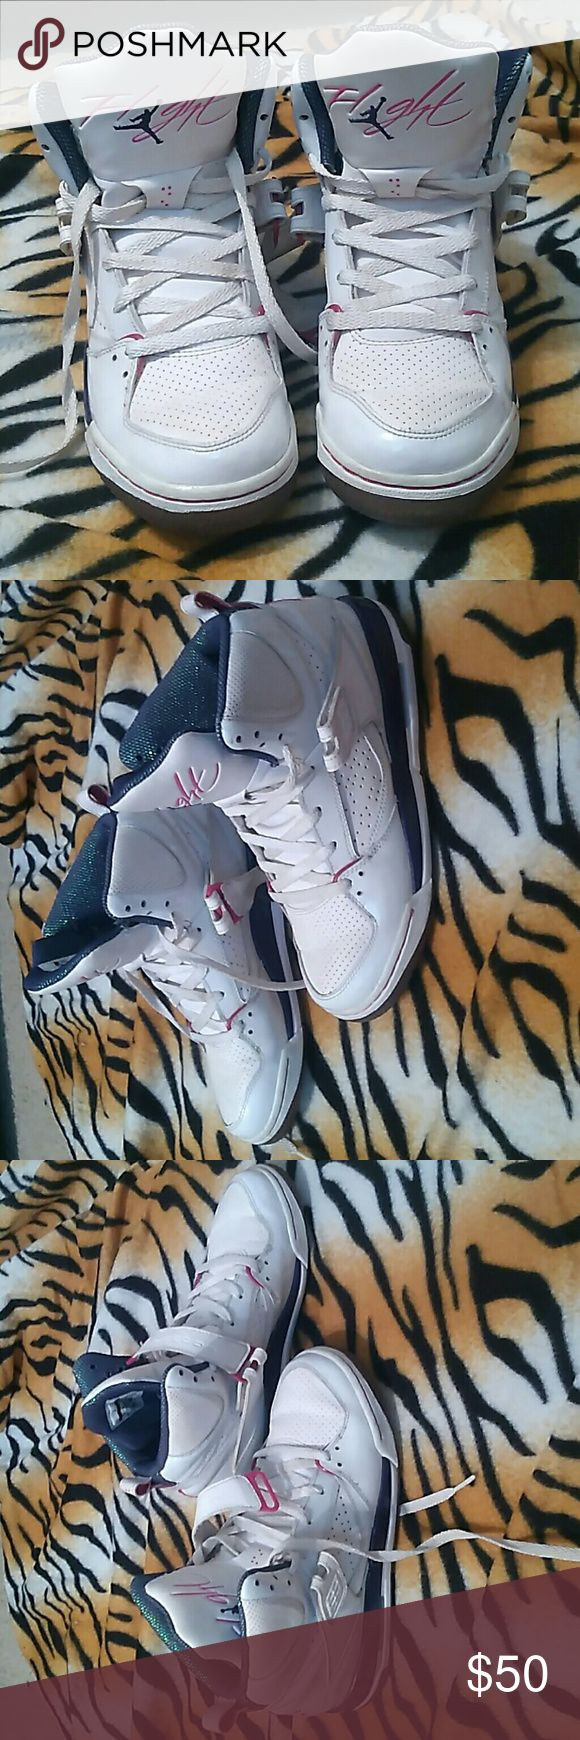 Jordans Pink purple and white Jordan's. Only worn 4 or 5 times. In good condition. Could use some new shoe laces though. Jordan Shoes Sneakers